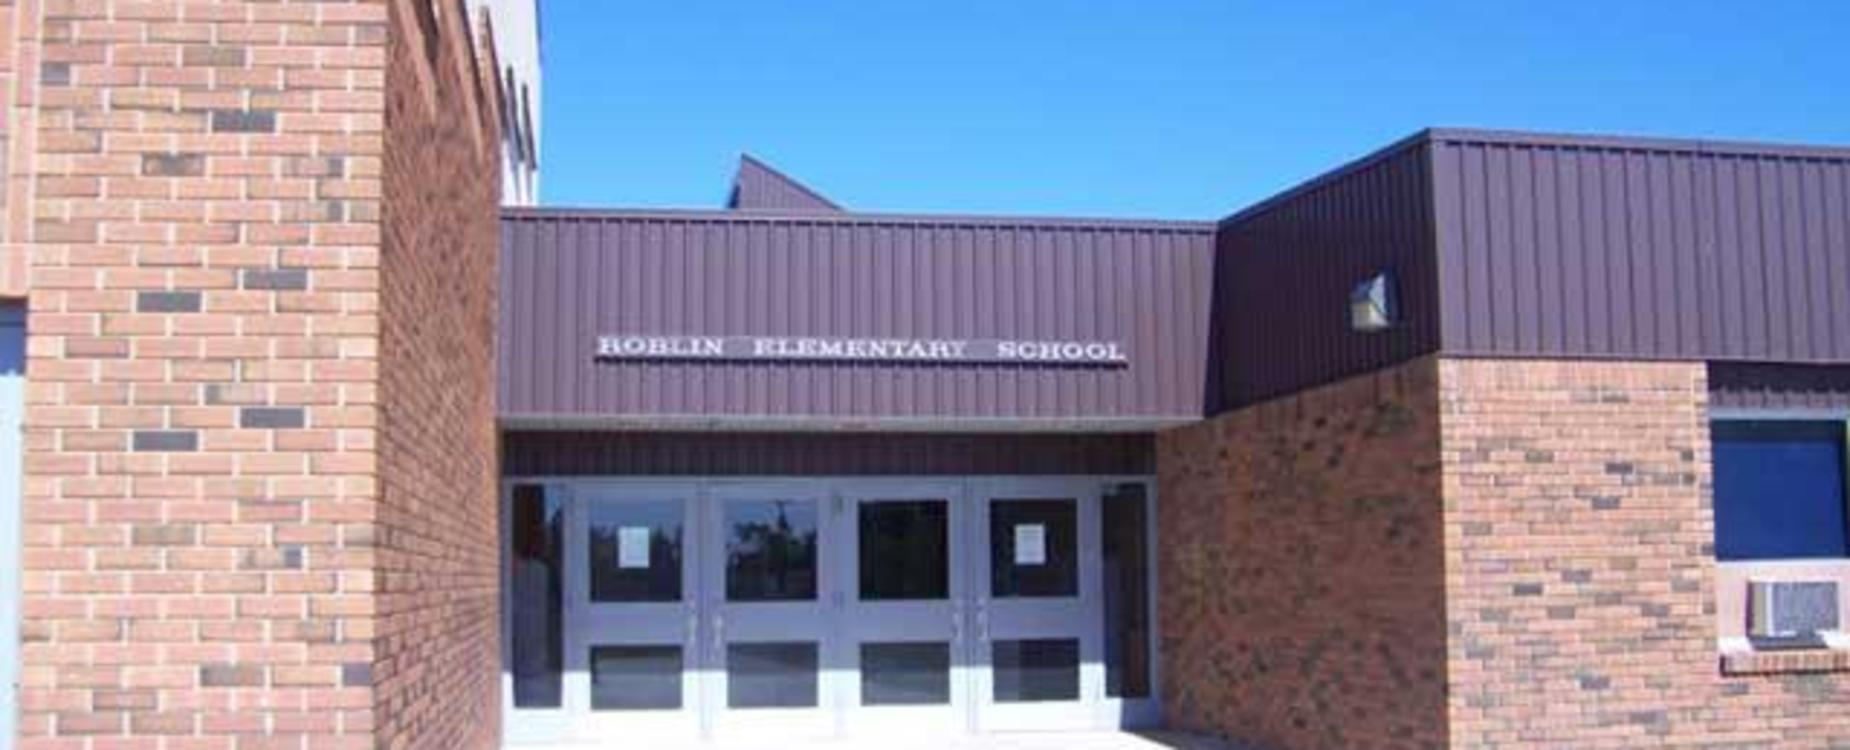 Welcome to Roblin Elementary School!